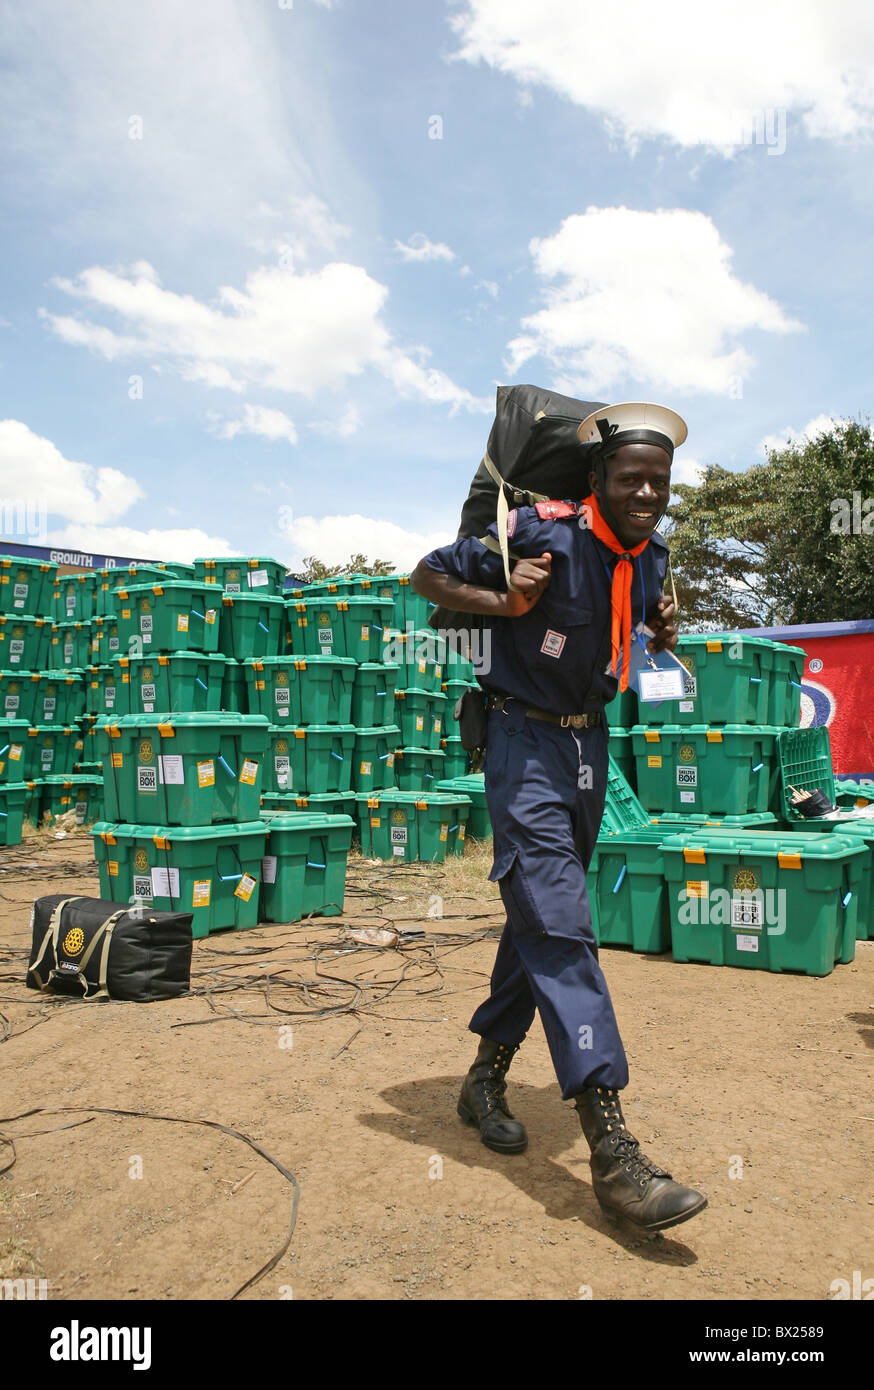 Kenyan scout helping Shelterbox to disribute aid following post-election violence Jan 2008, Nakuru Showground, Kenya - Stock Image